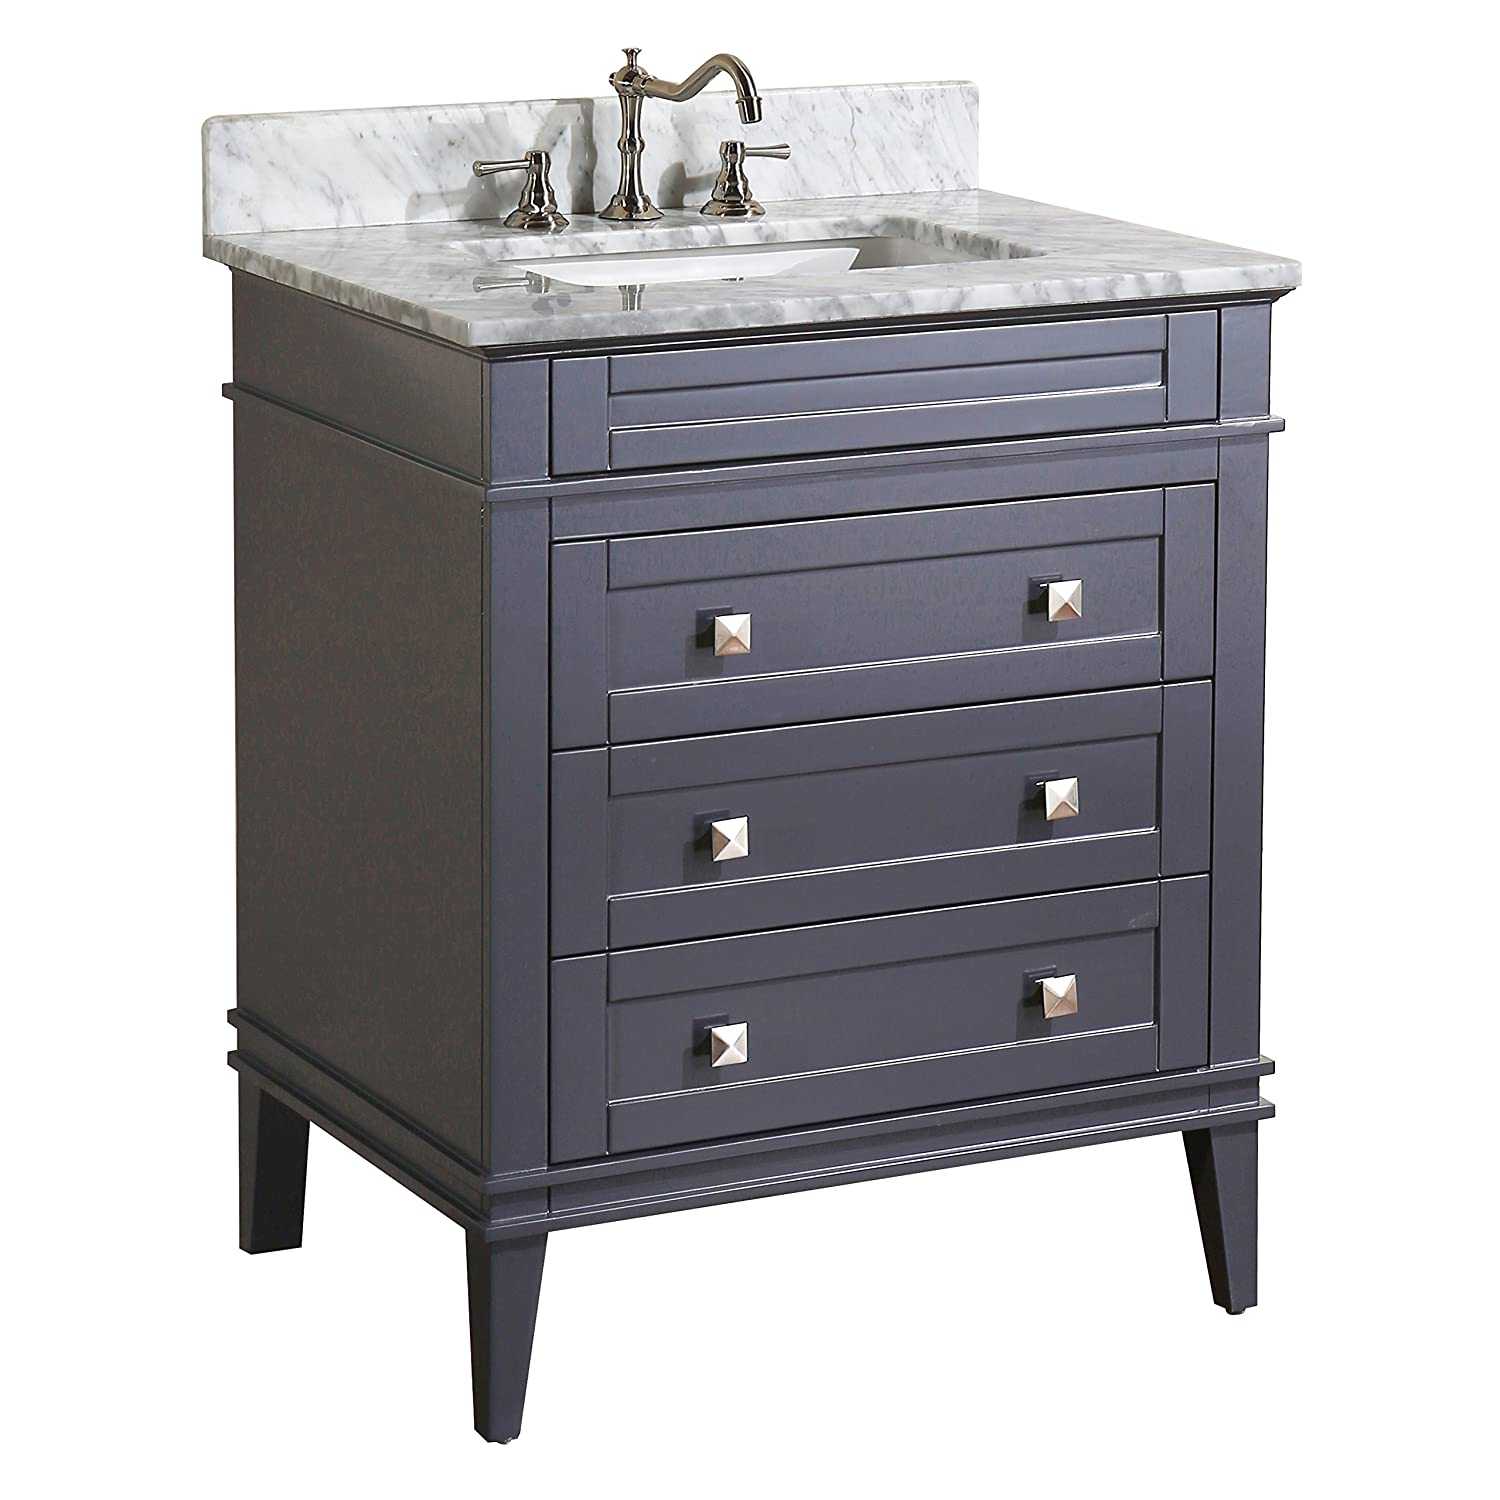 Eleanor 30-inch Bathroom Vanity Carrara Charcoal Gray Includes a Charcoal Gray Cabinet, Soft Close Drawers, a Natural Italian Carrara Marble Countertop, and a Ceramic Sink